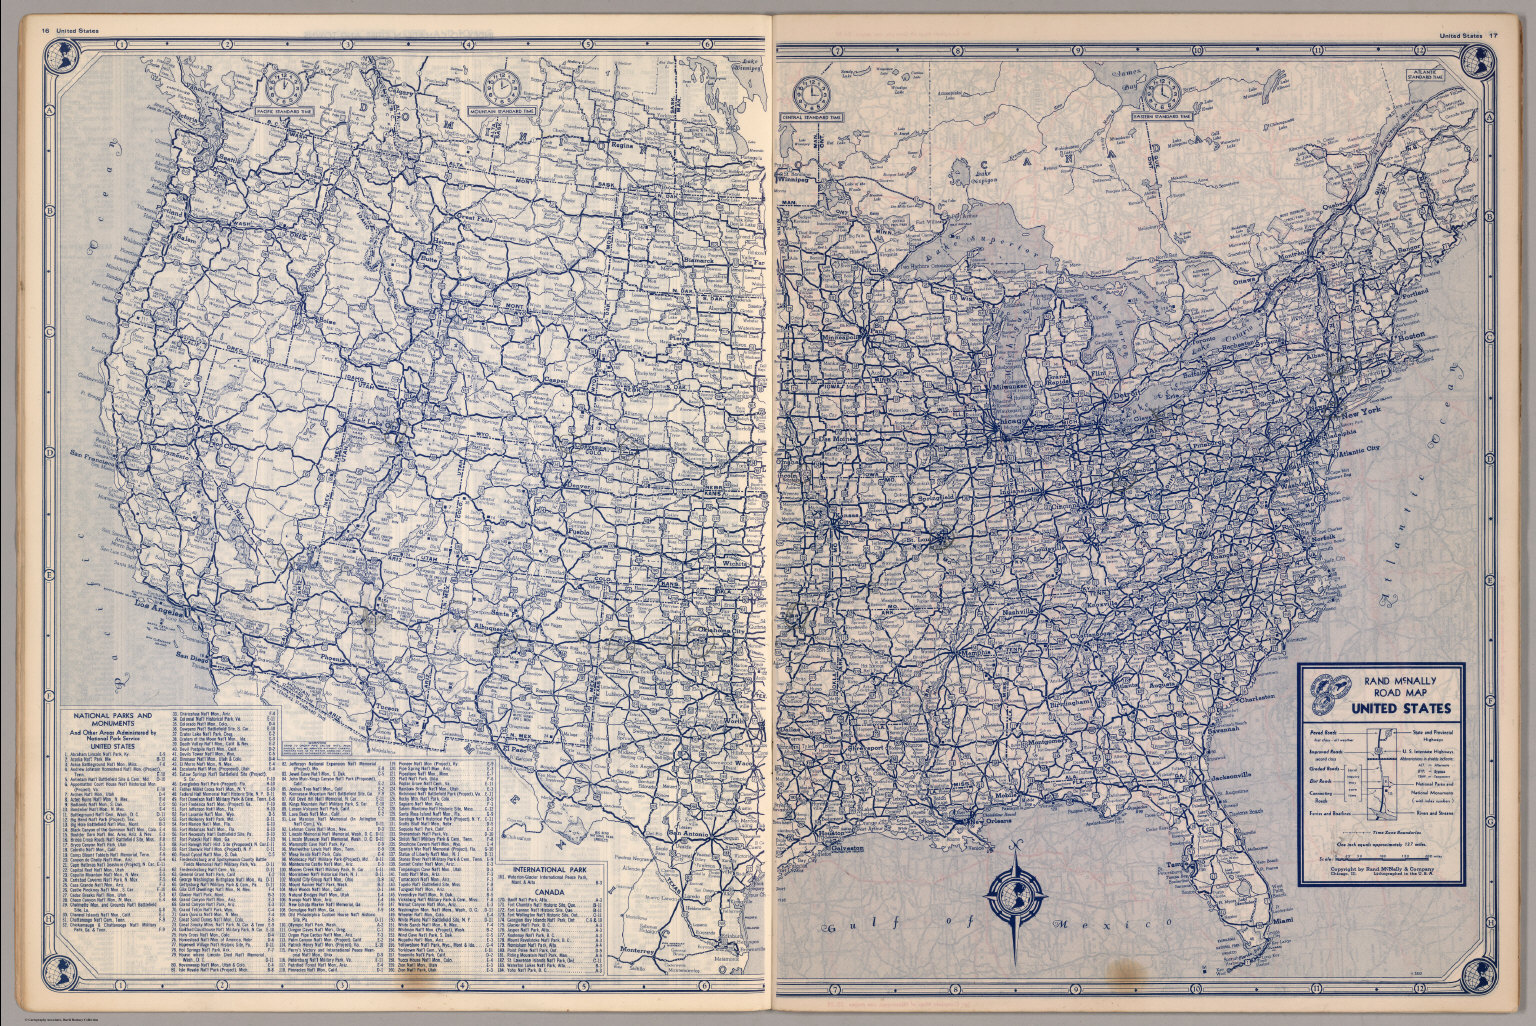 United States Road Map - David Rumsey Historical Map Collection